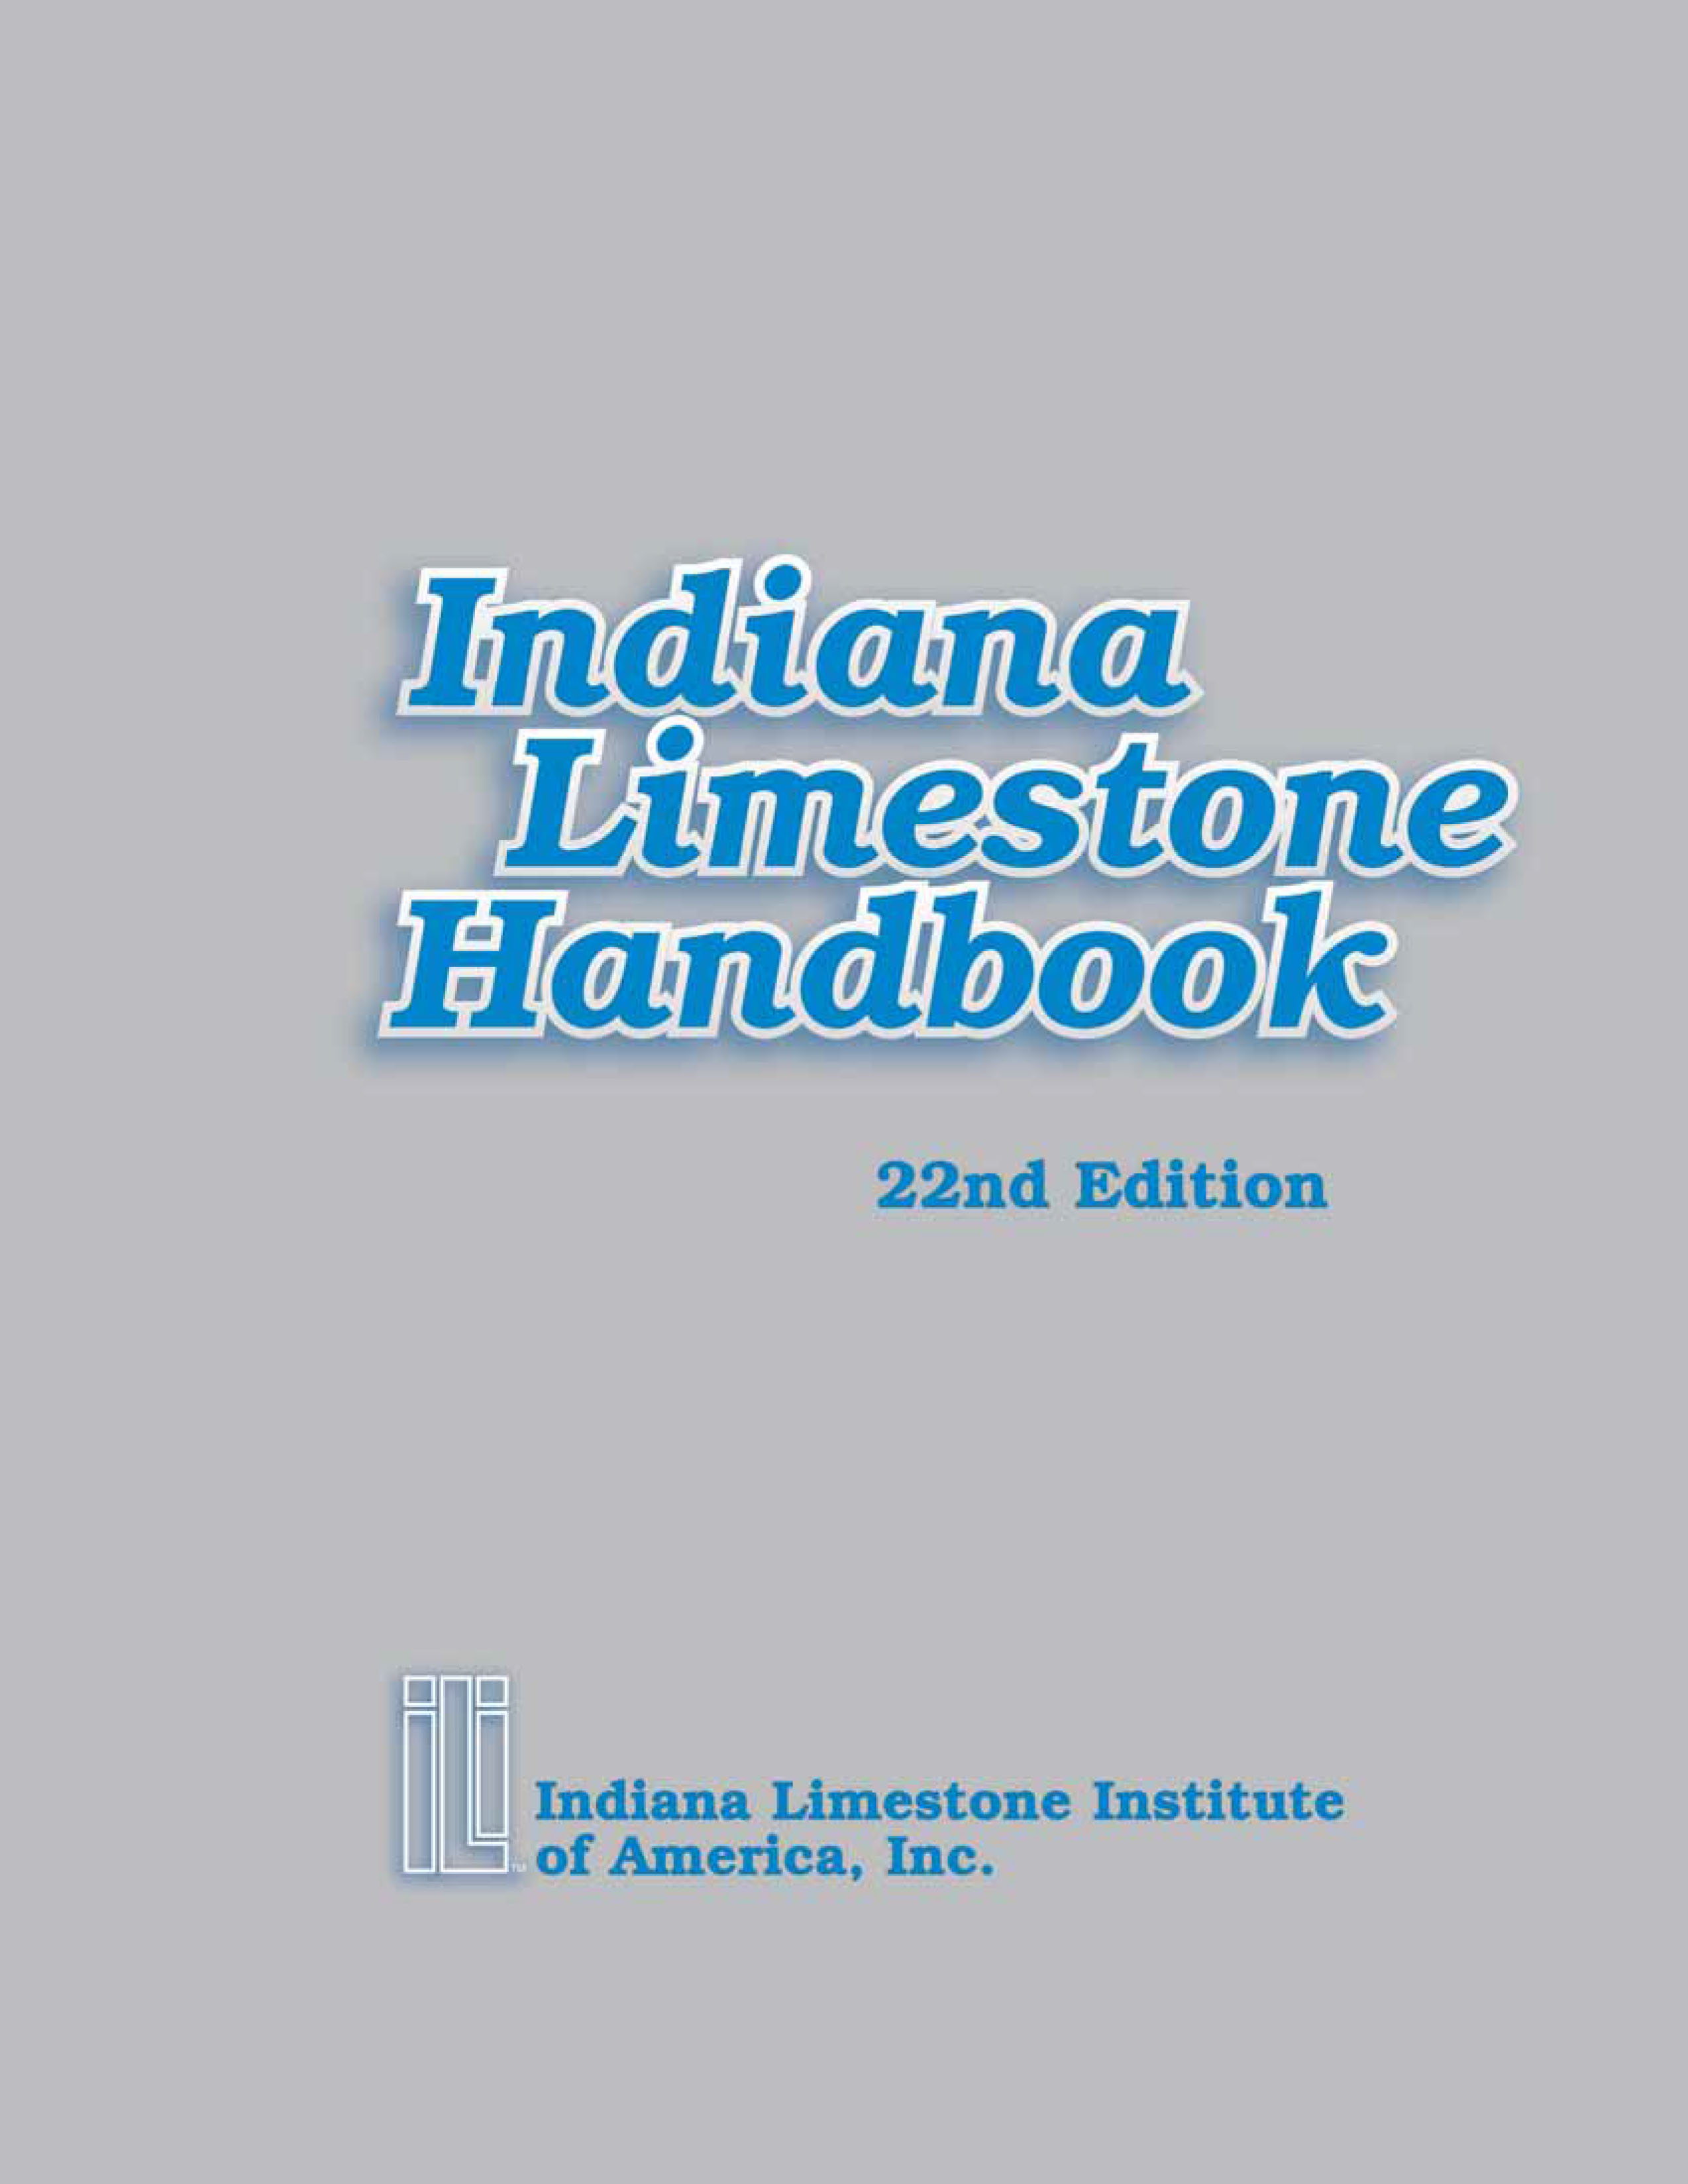 22nd Edition Handbook Cover